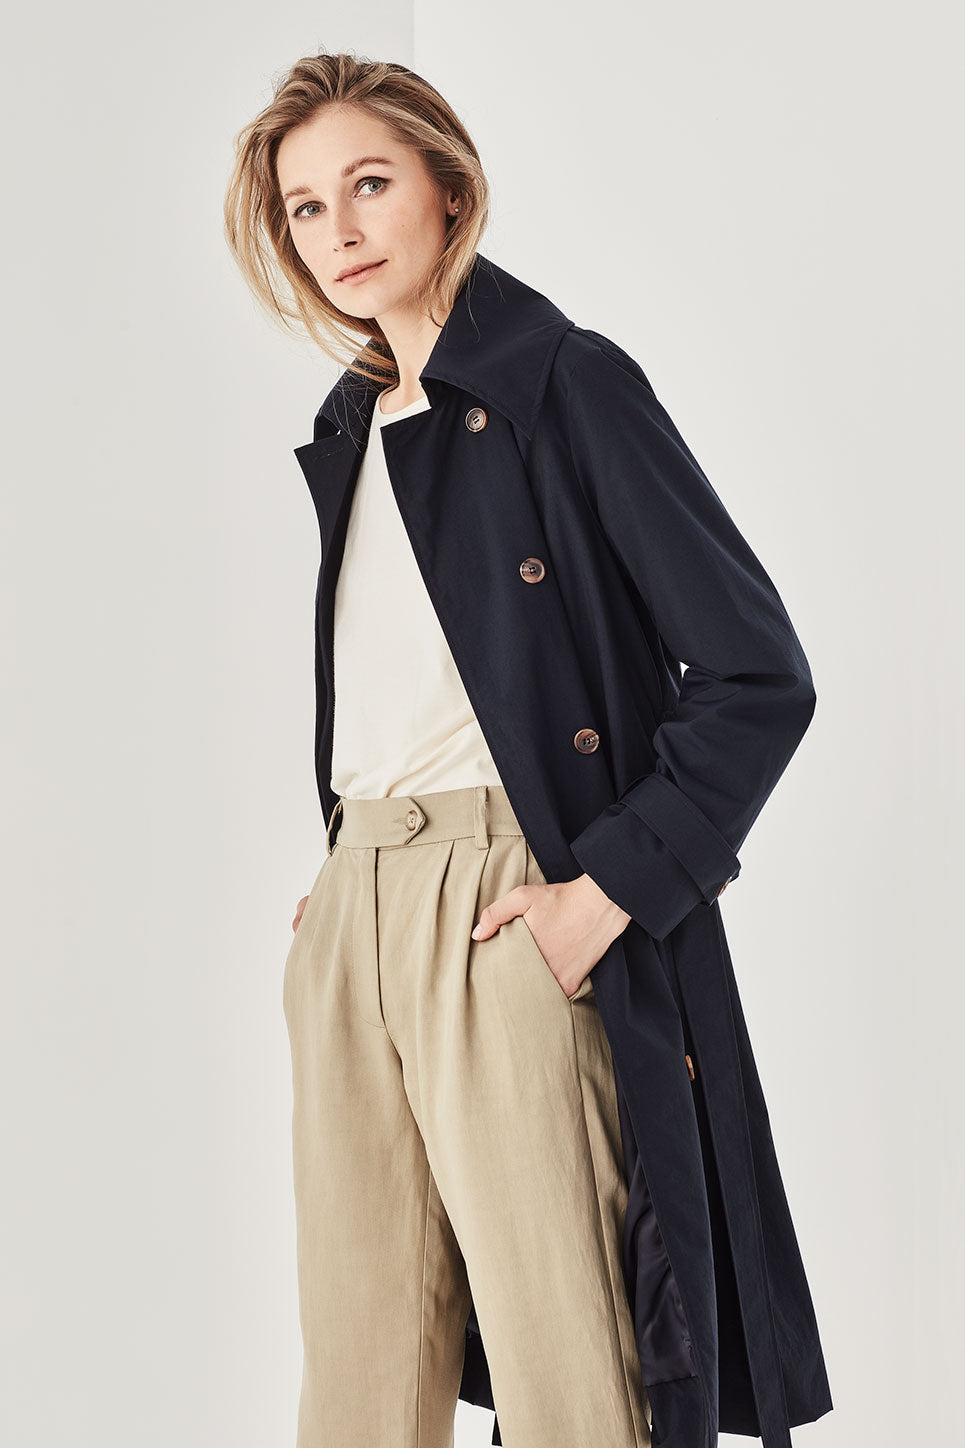 The Caspian Coat in Navy